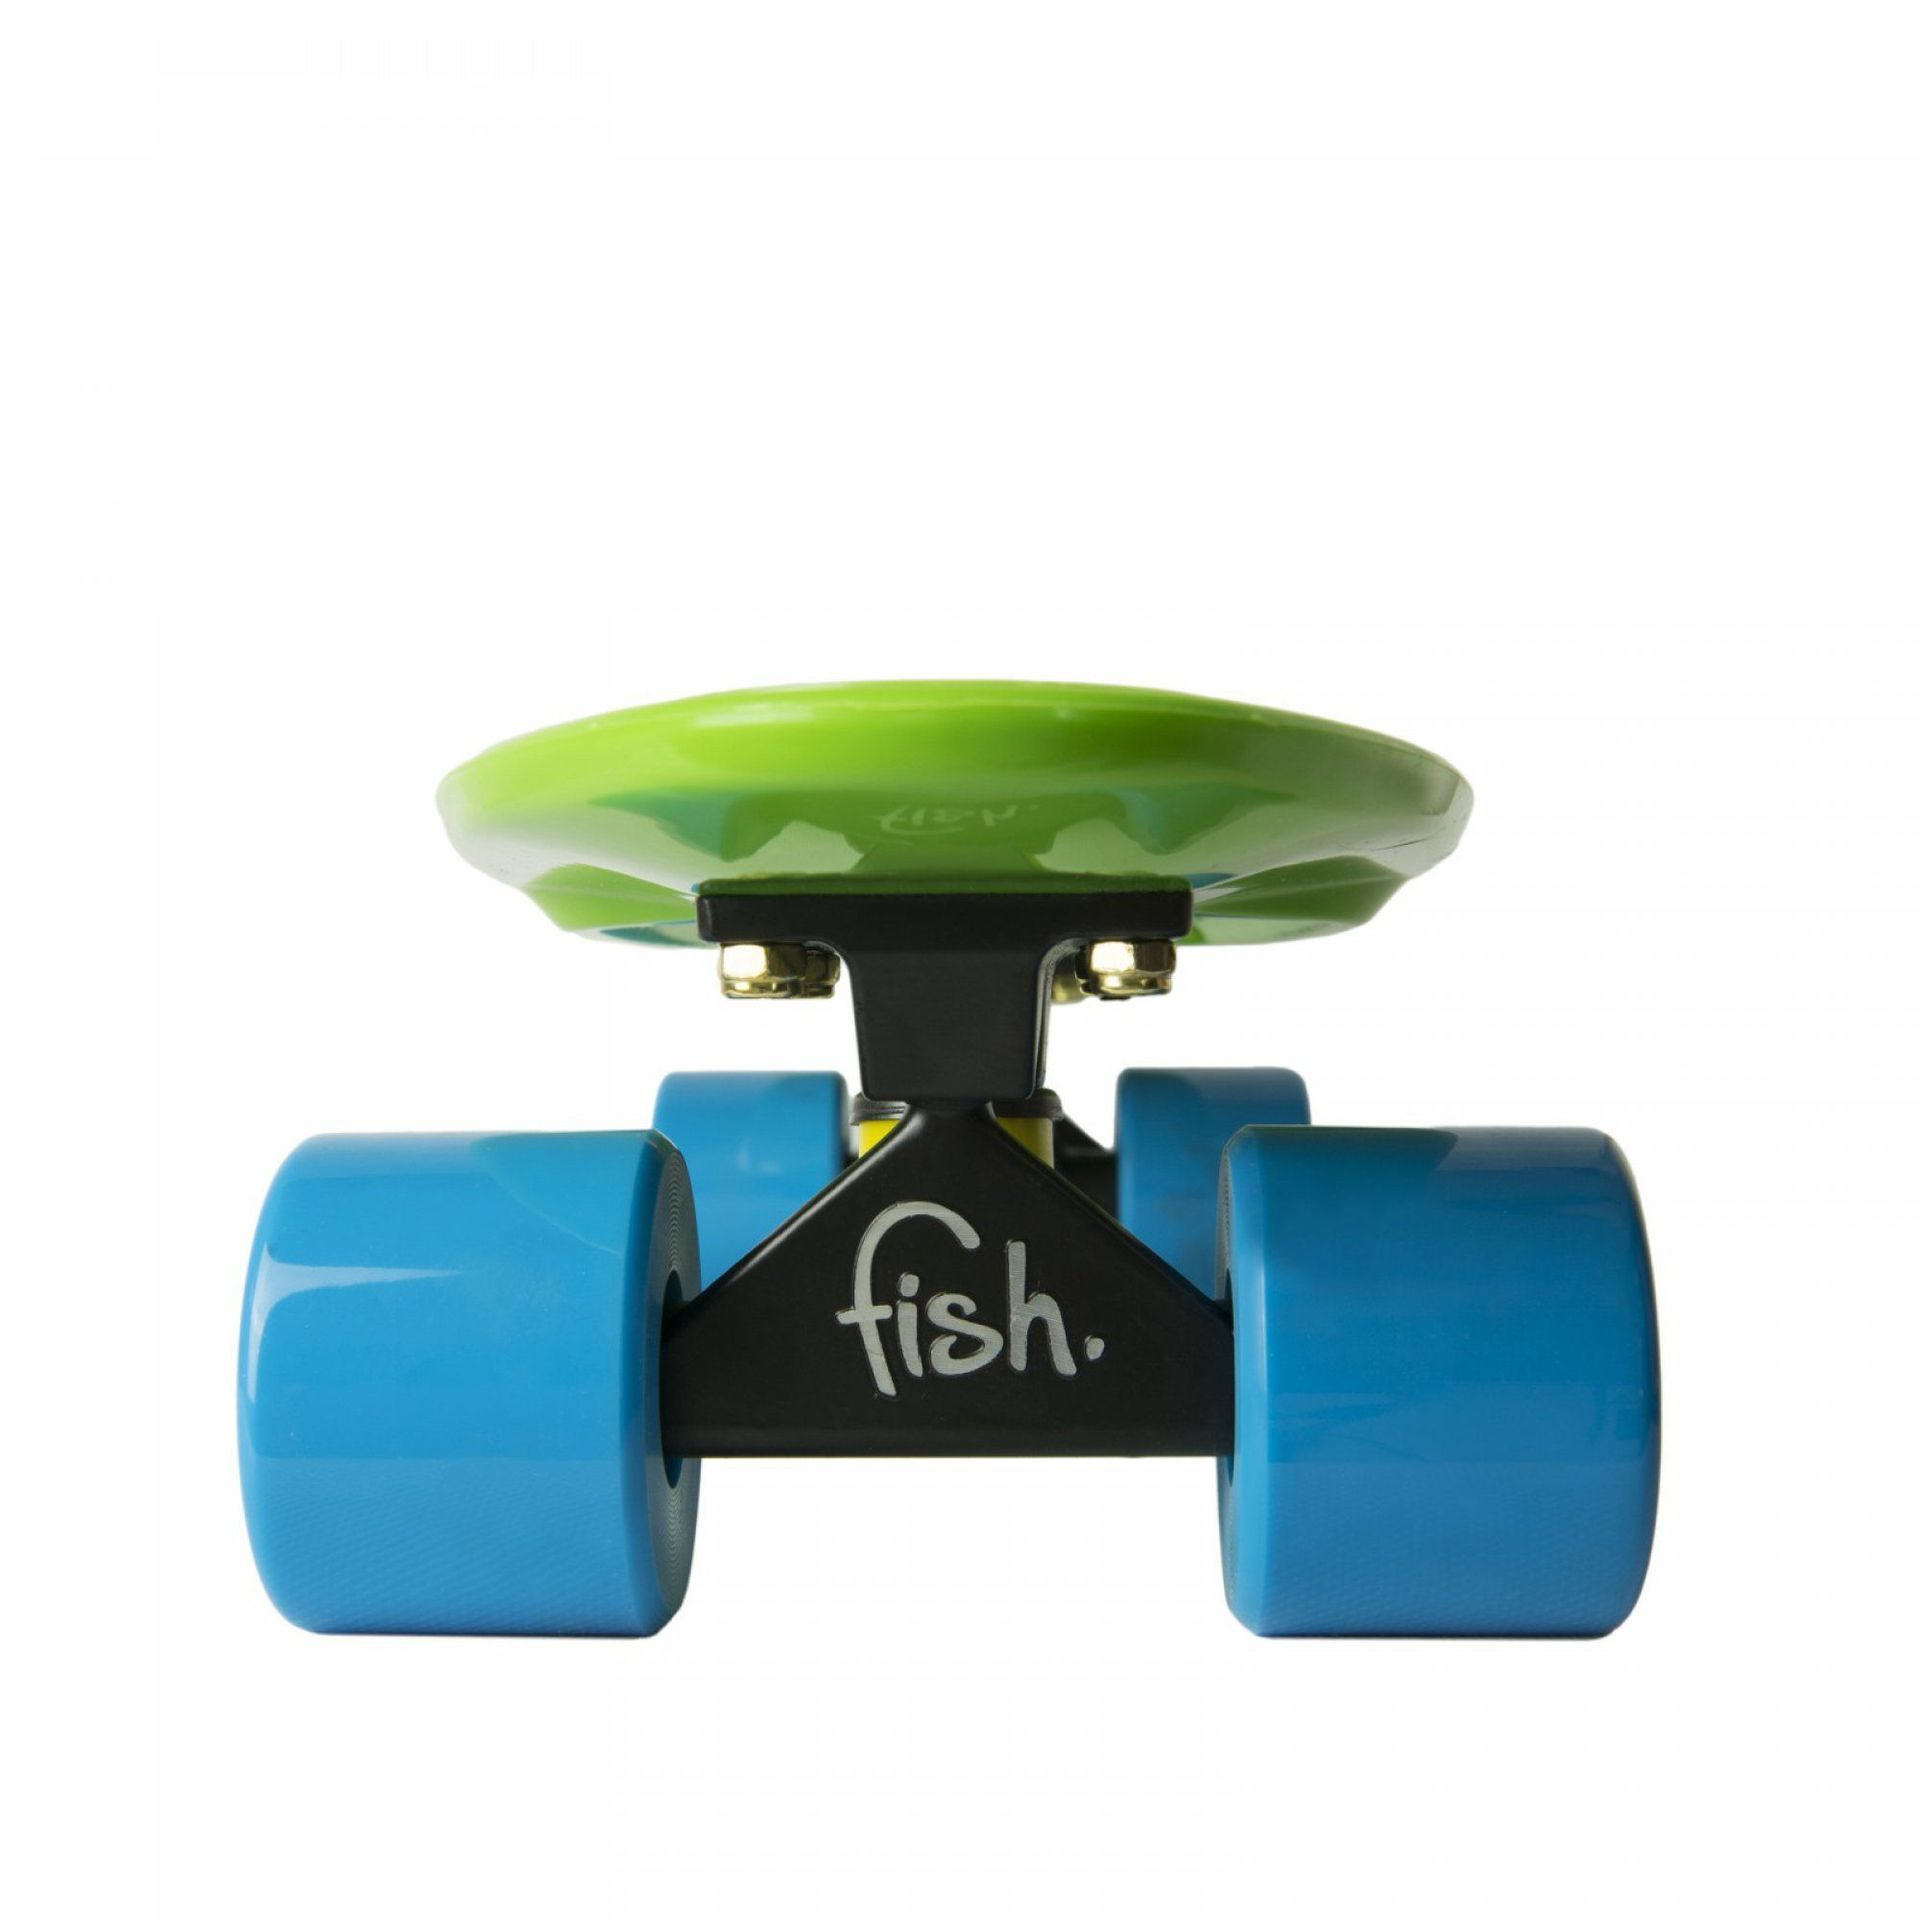 FISHBOARD FISH SKATEBOARDS CLASSIC GREEN|BLACK|BLUE 2